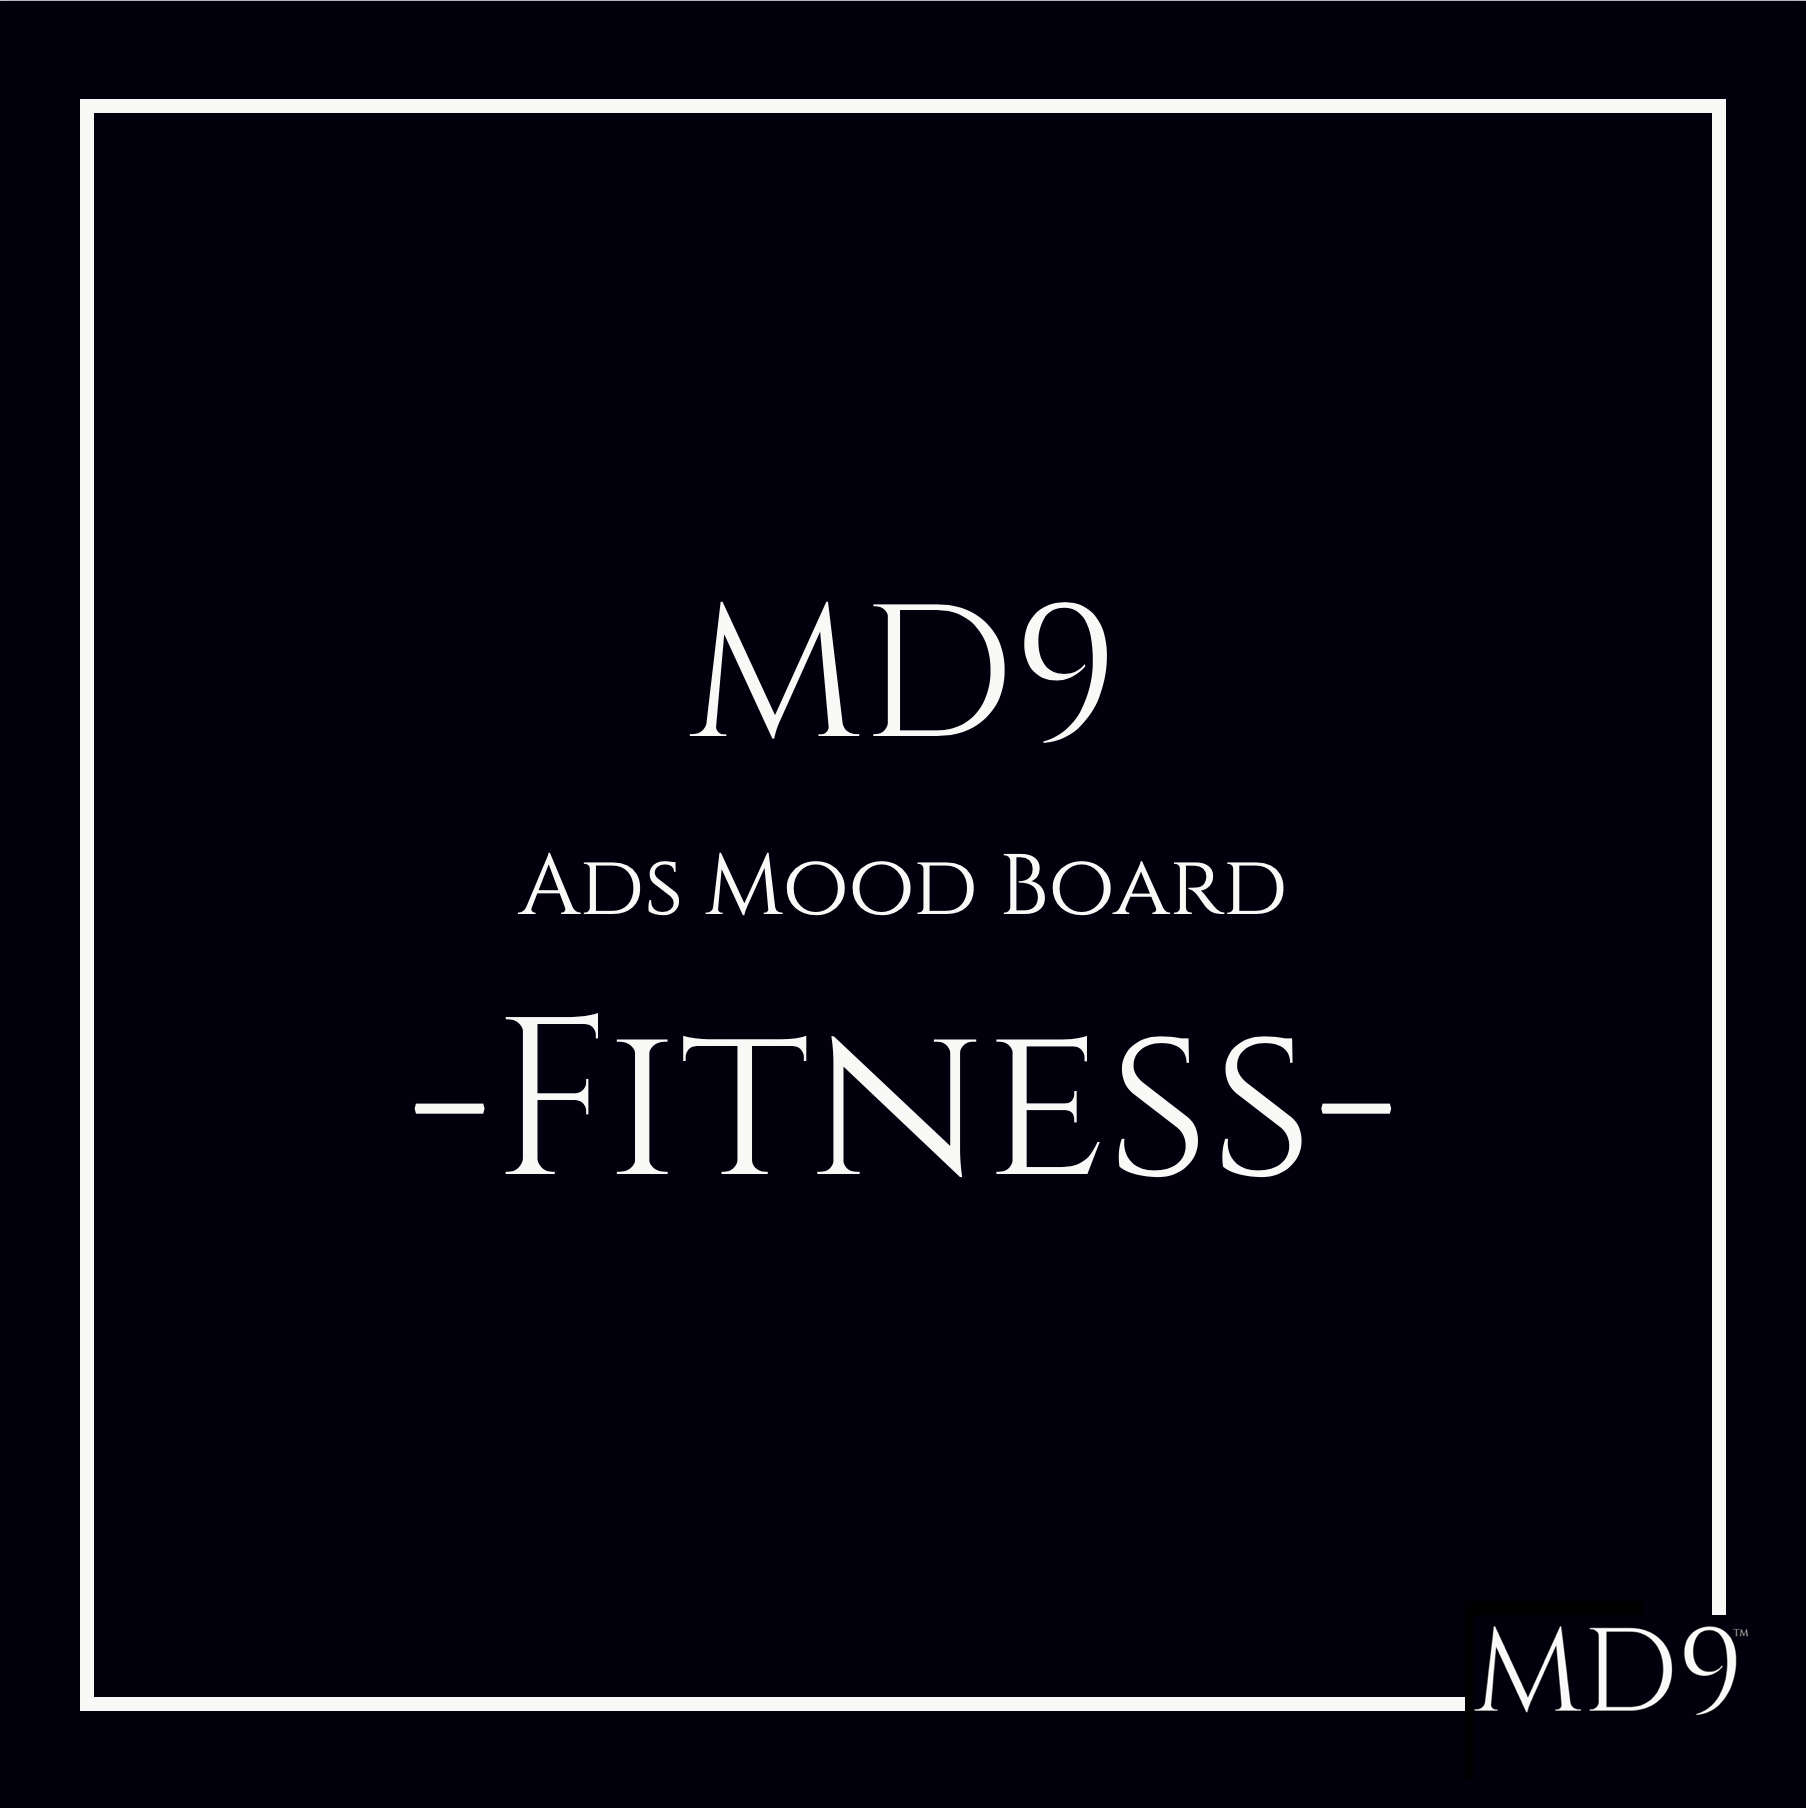 MD9's Ads Mood Board – Fitness